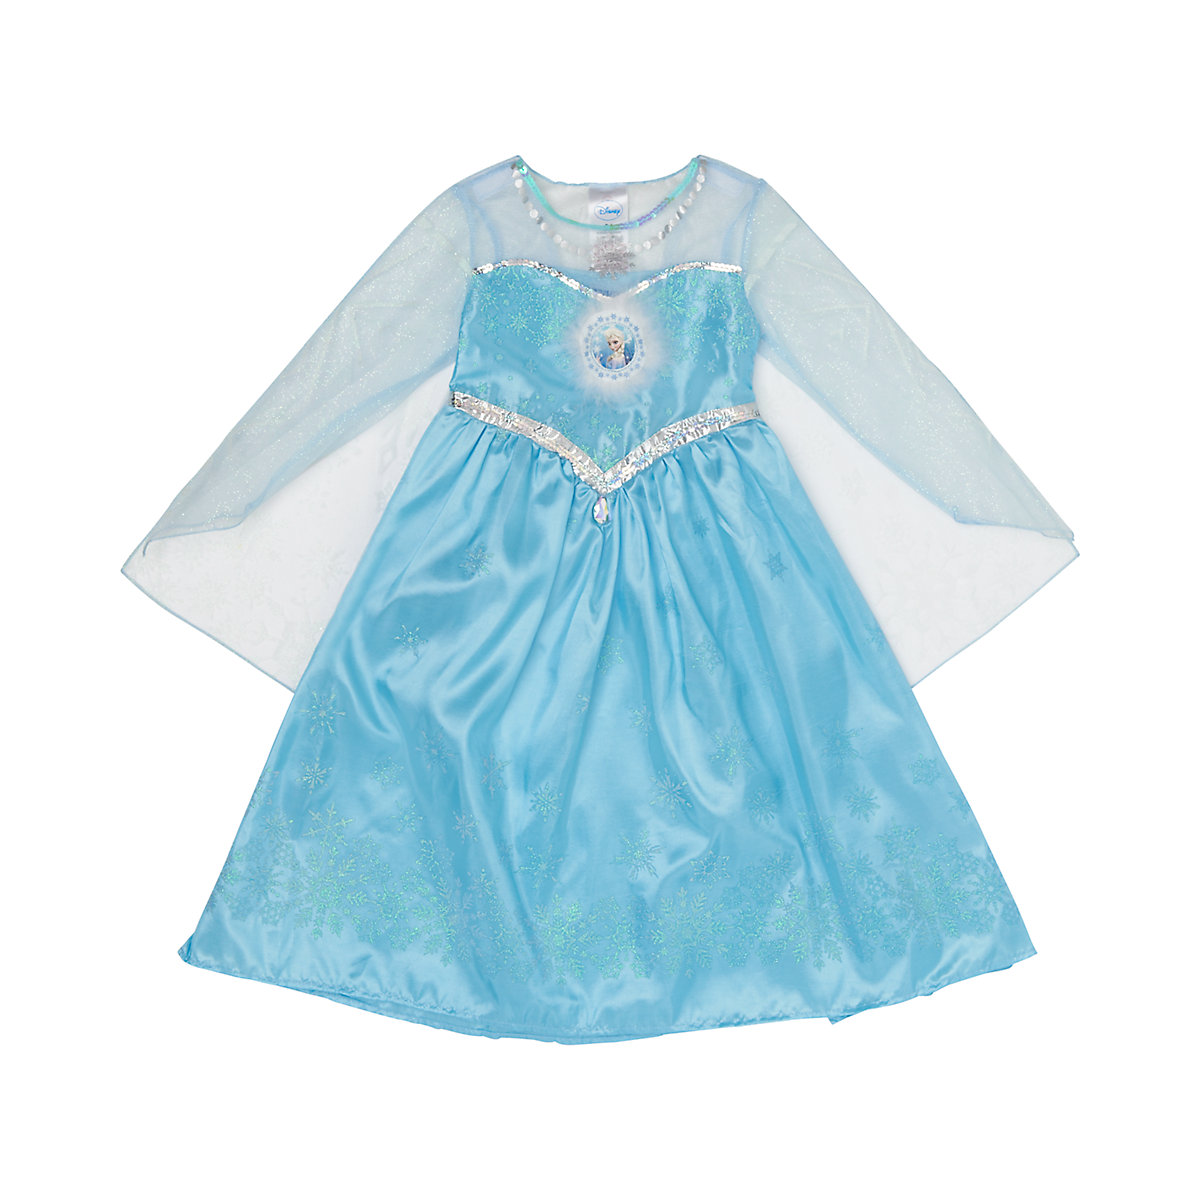 New ELC Disney Frozen Elsa Dress 3-4 Years Toy From 3 years - Dressing Up Gifts